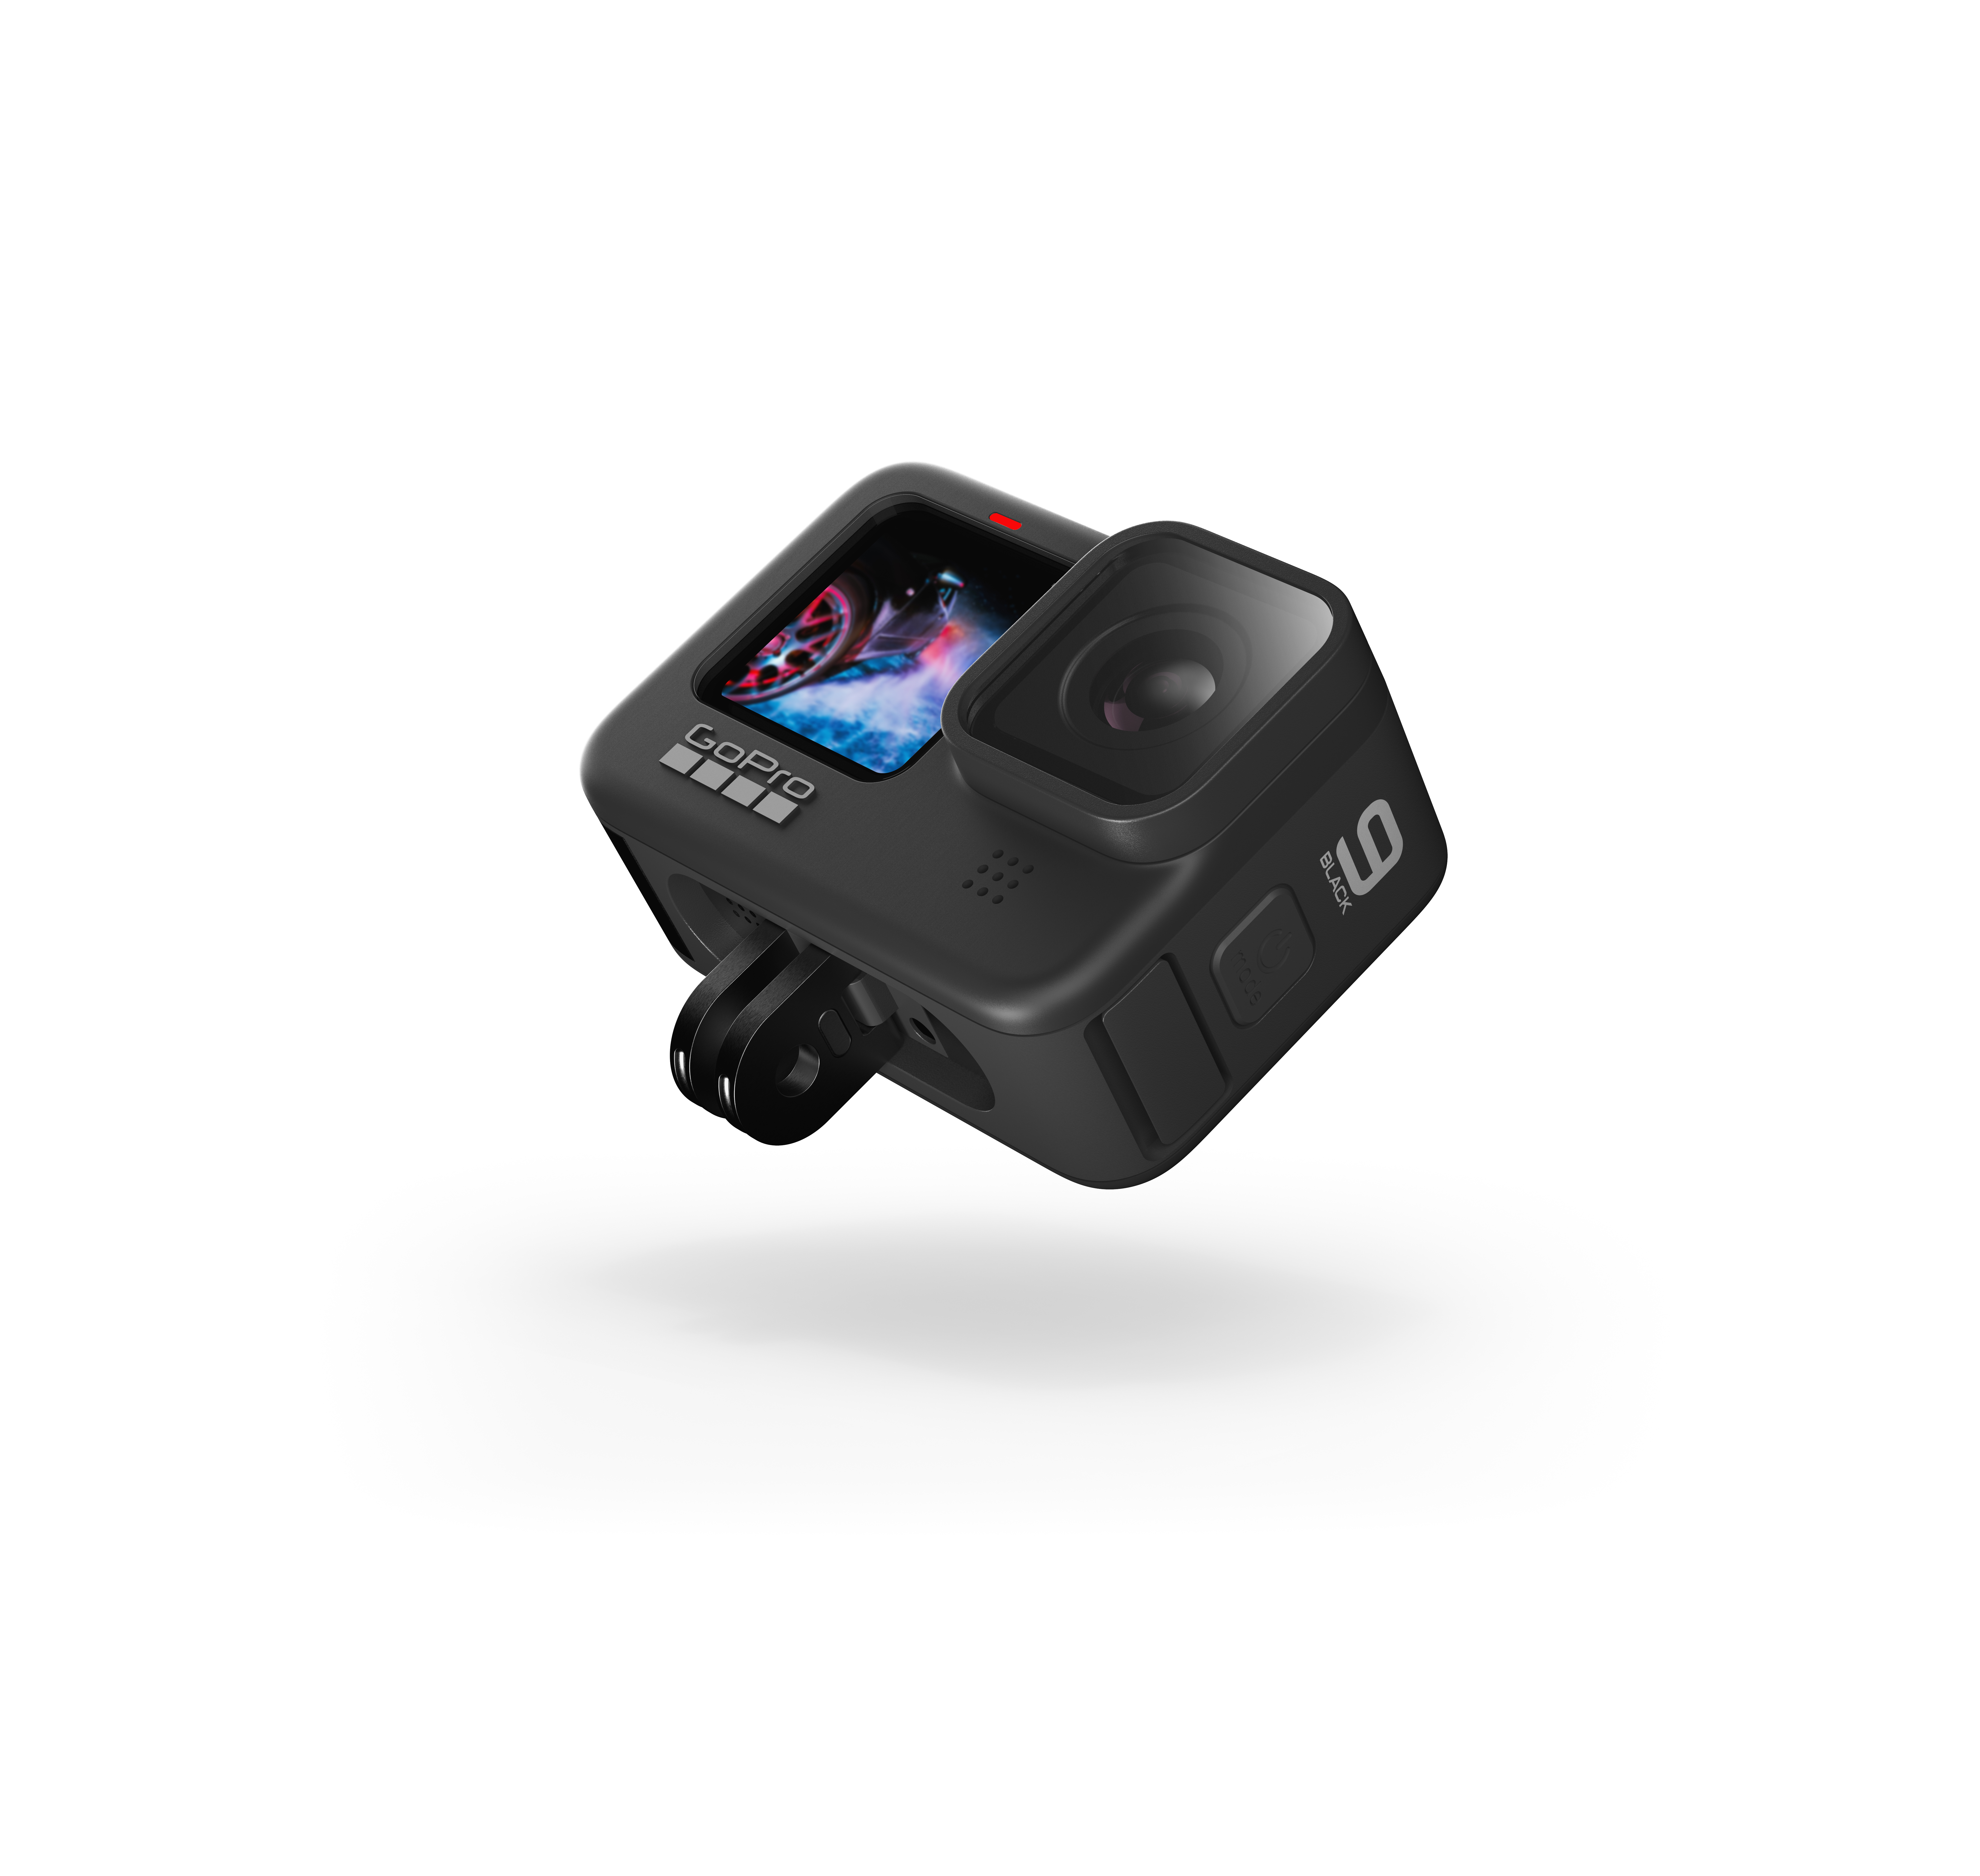 The GoPro HERO9 Black Is Here, With 5K Video & 20MP Stills 1